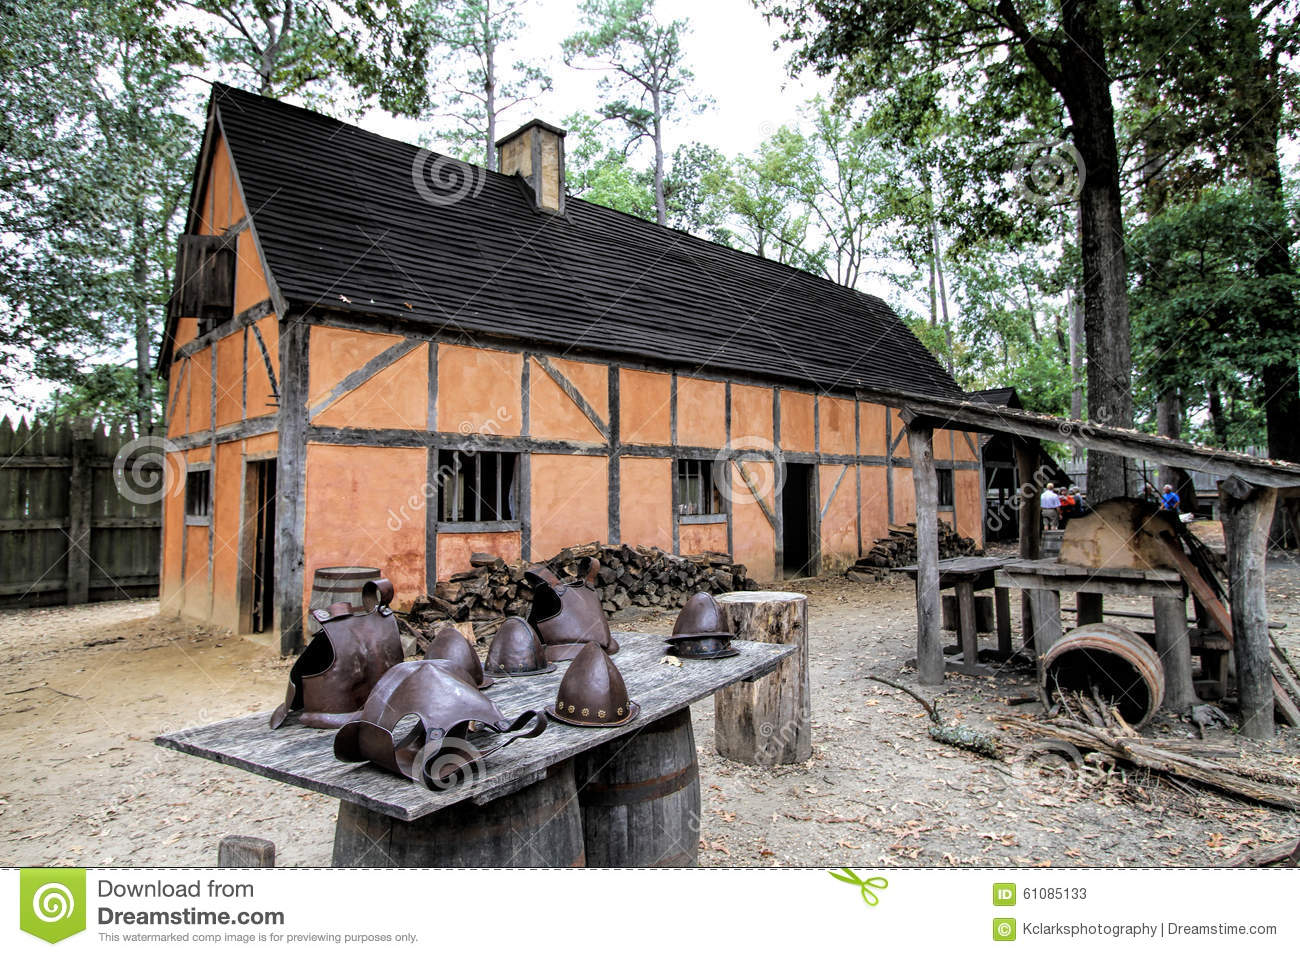 Historical Jamestown Virginia Building And Artifacts Stock